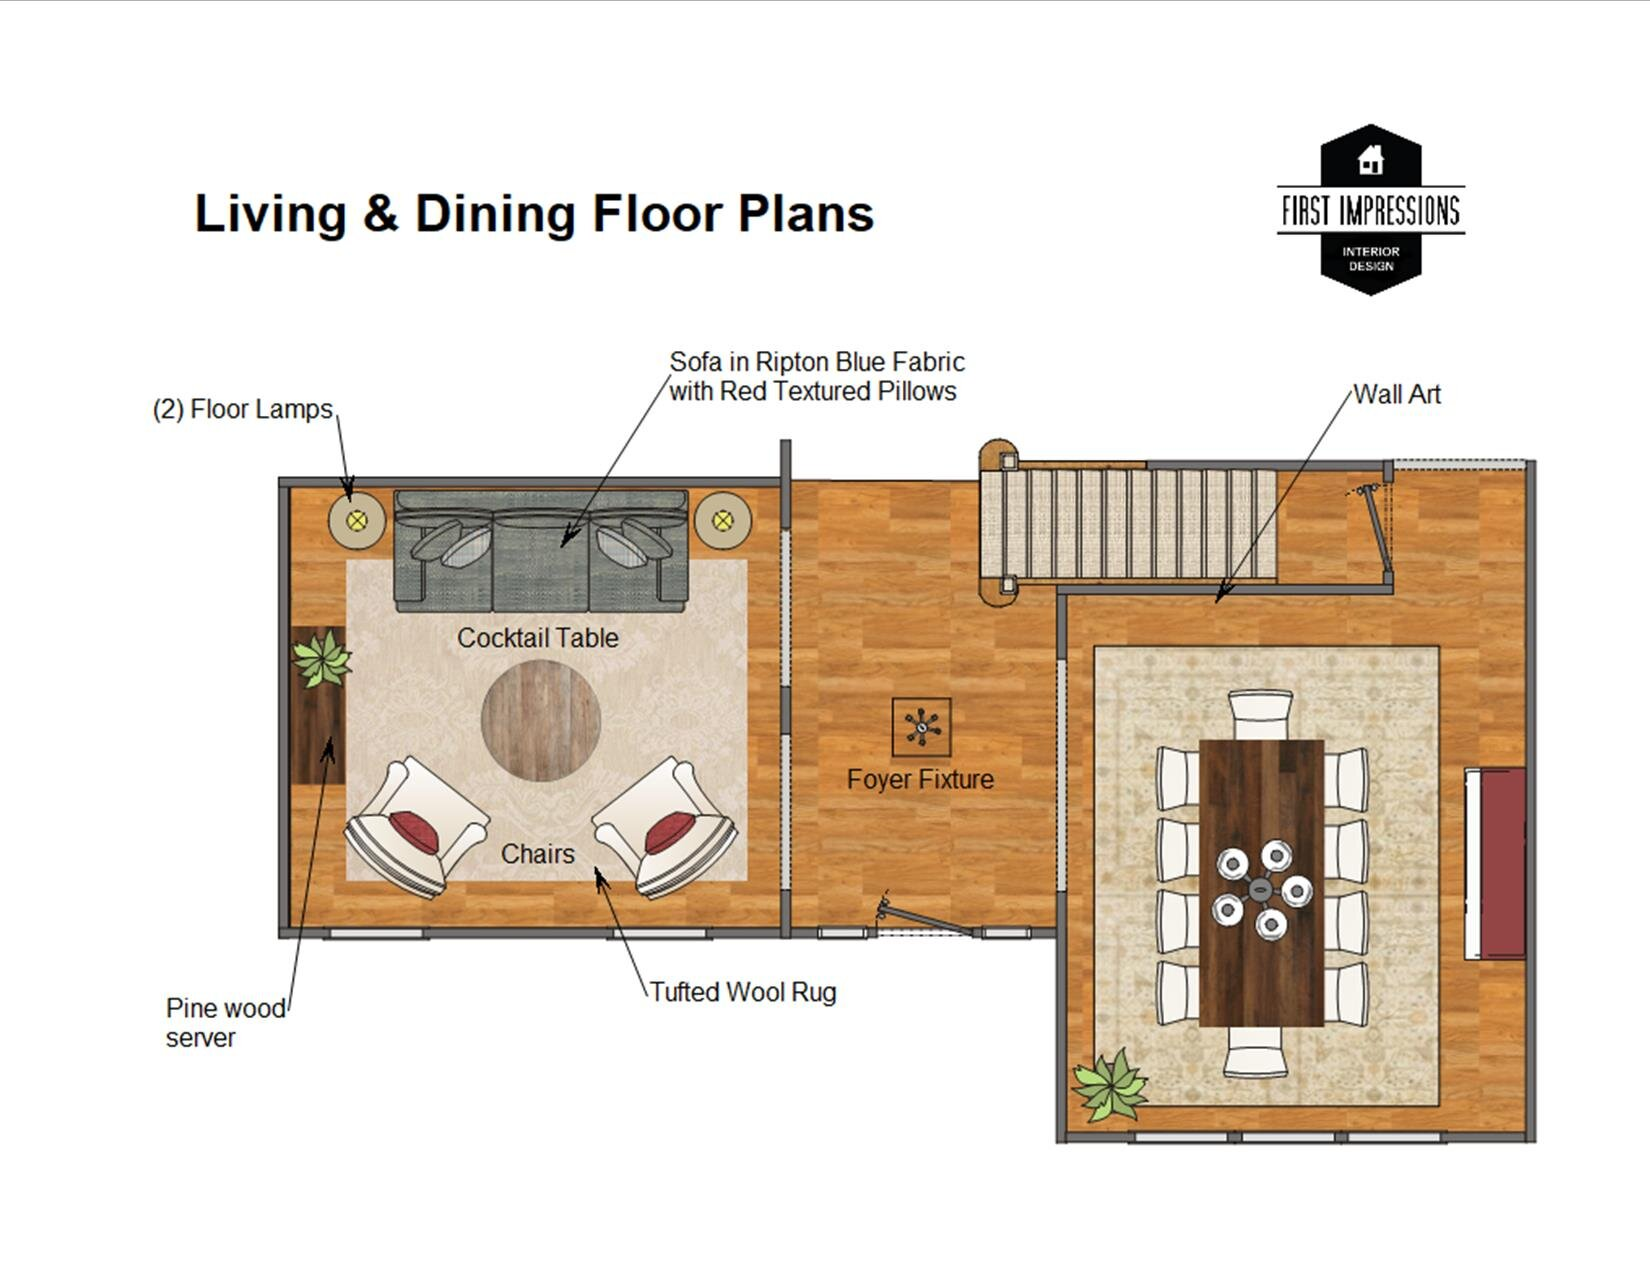 Home was measured and floor plan created to scale